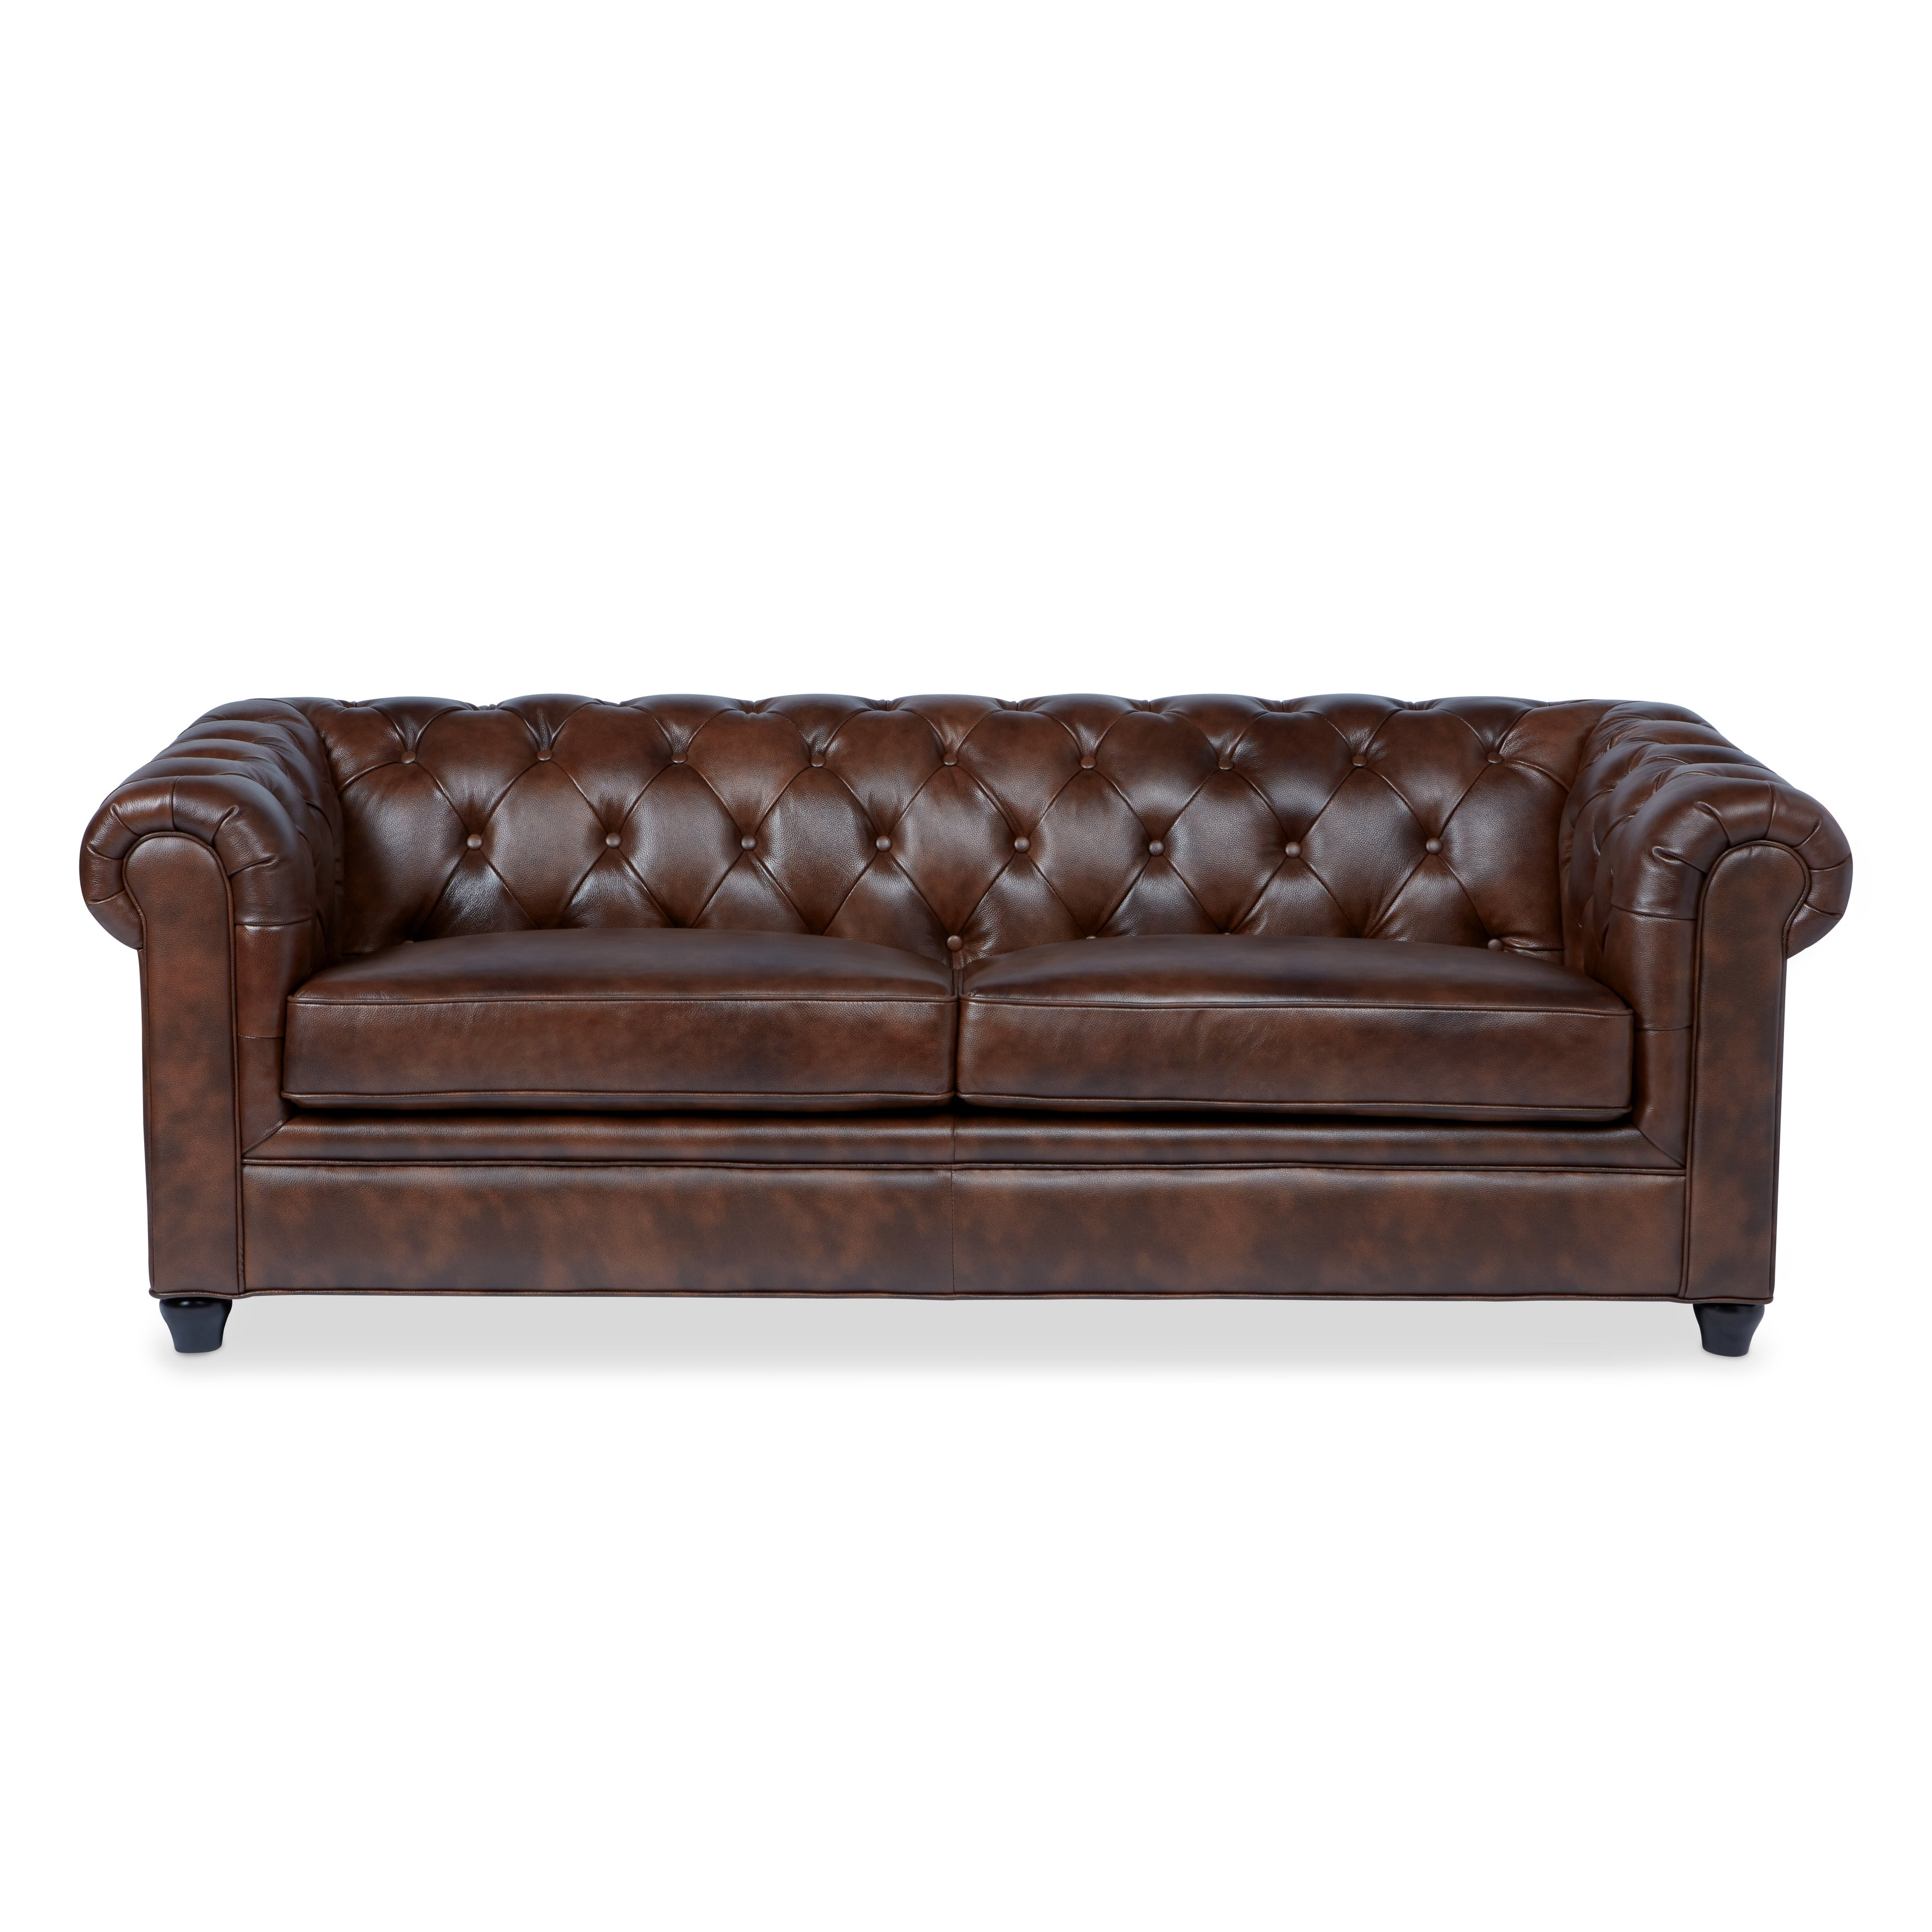 High Quality Abbyson Tuscan Top Grain Leather Chesterfield Sofa   Free Shipping Today    Overstock.com   15559674